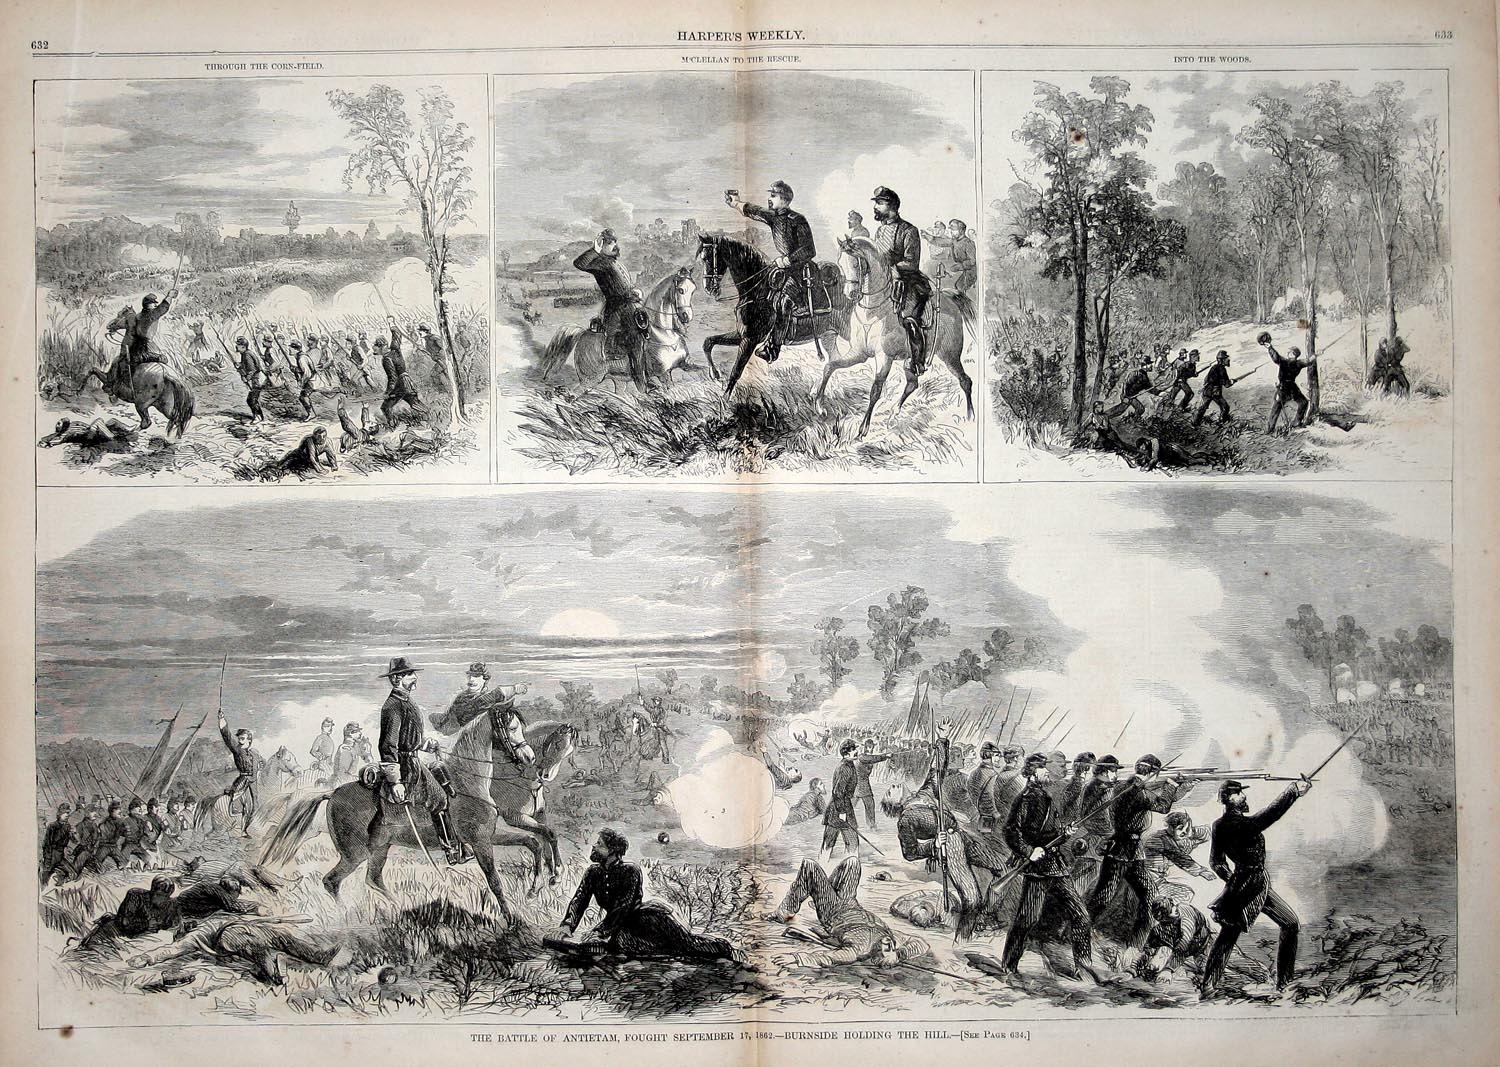 battle of antietam On september 17, 1862, generals robert e lee and george mcclellan faced off near antietam creek in sharpsburg, maryland, in the the first battle of the american civil war to be fought on northern soilthough mcclellan failed toutlilize his numerical superiority to crush lee'sarmy, he was able to check the confederate advance intothe north.